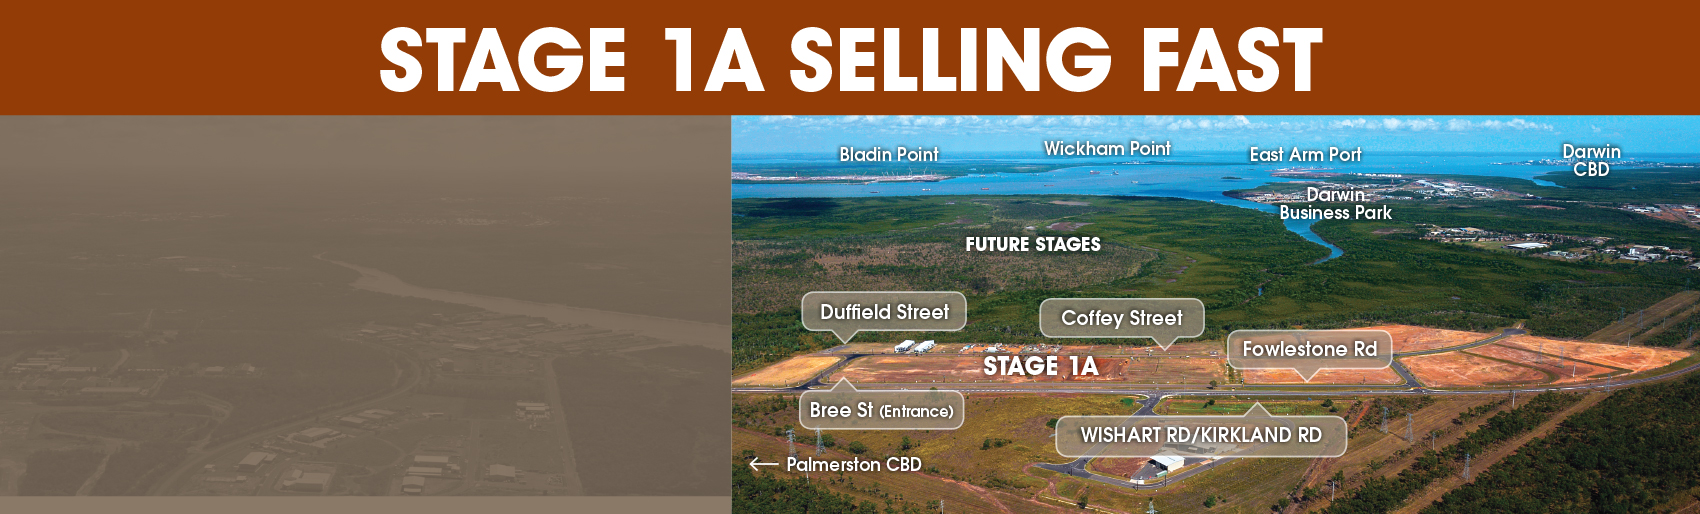 Stage 1A Selling Fast